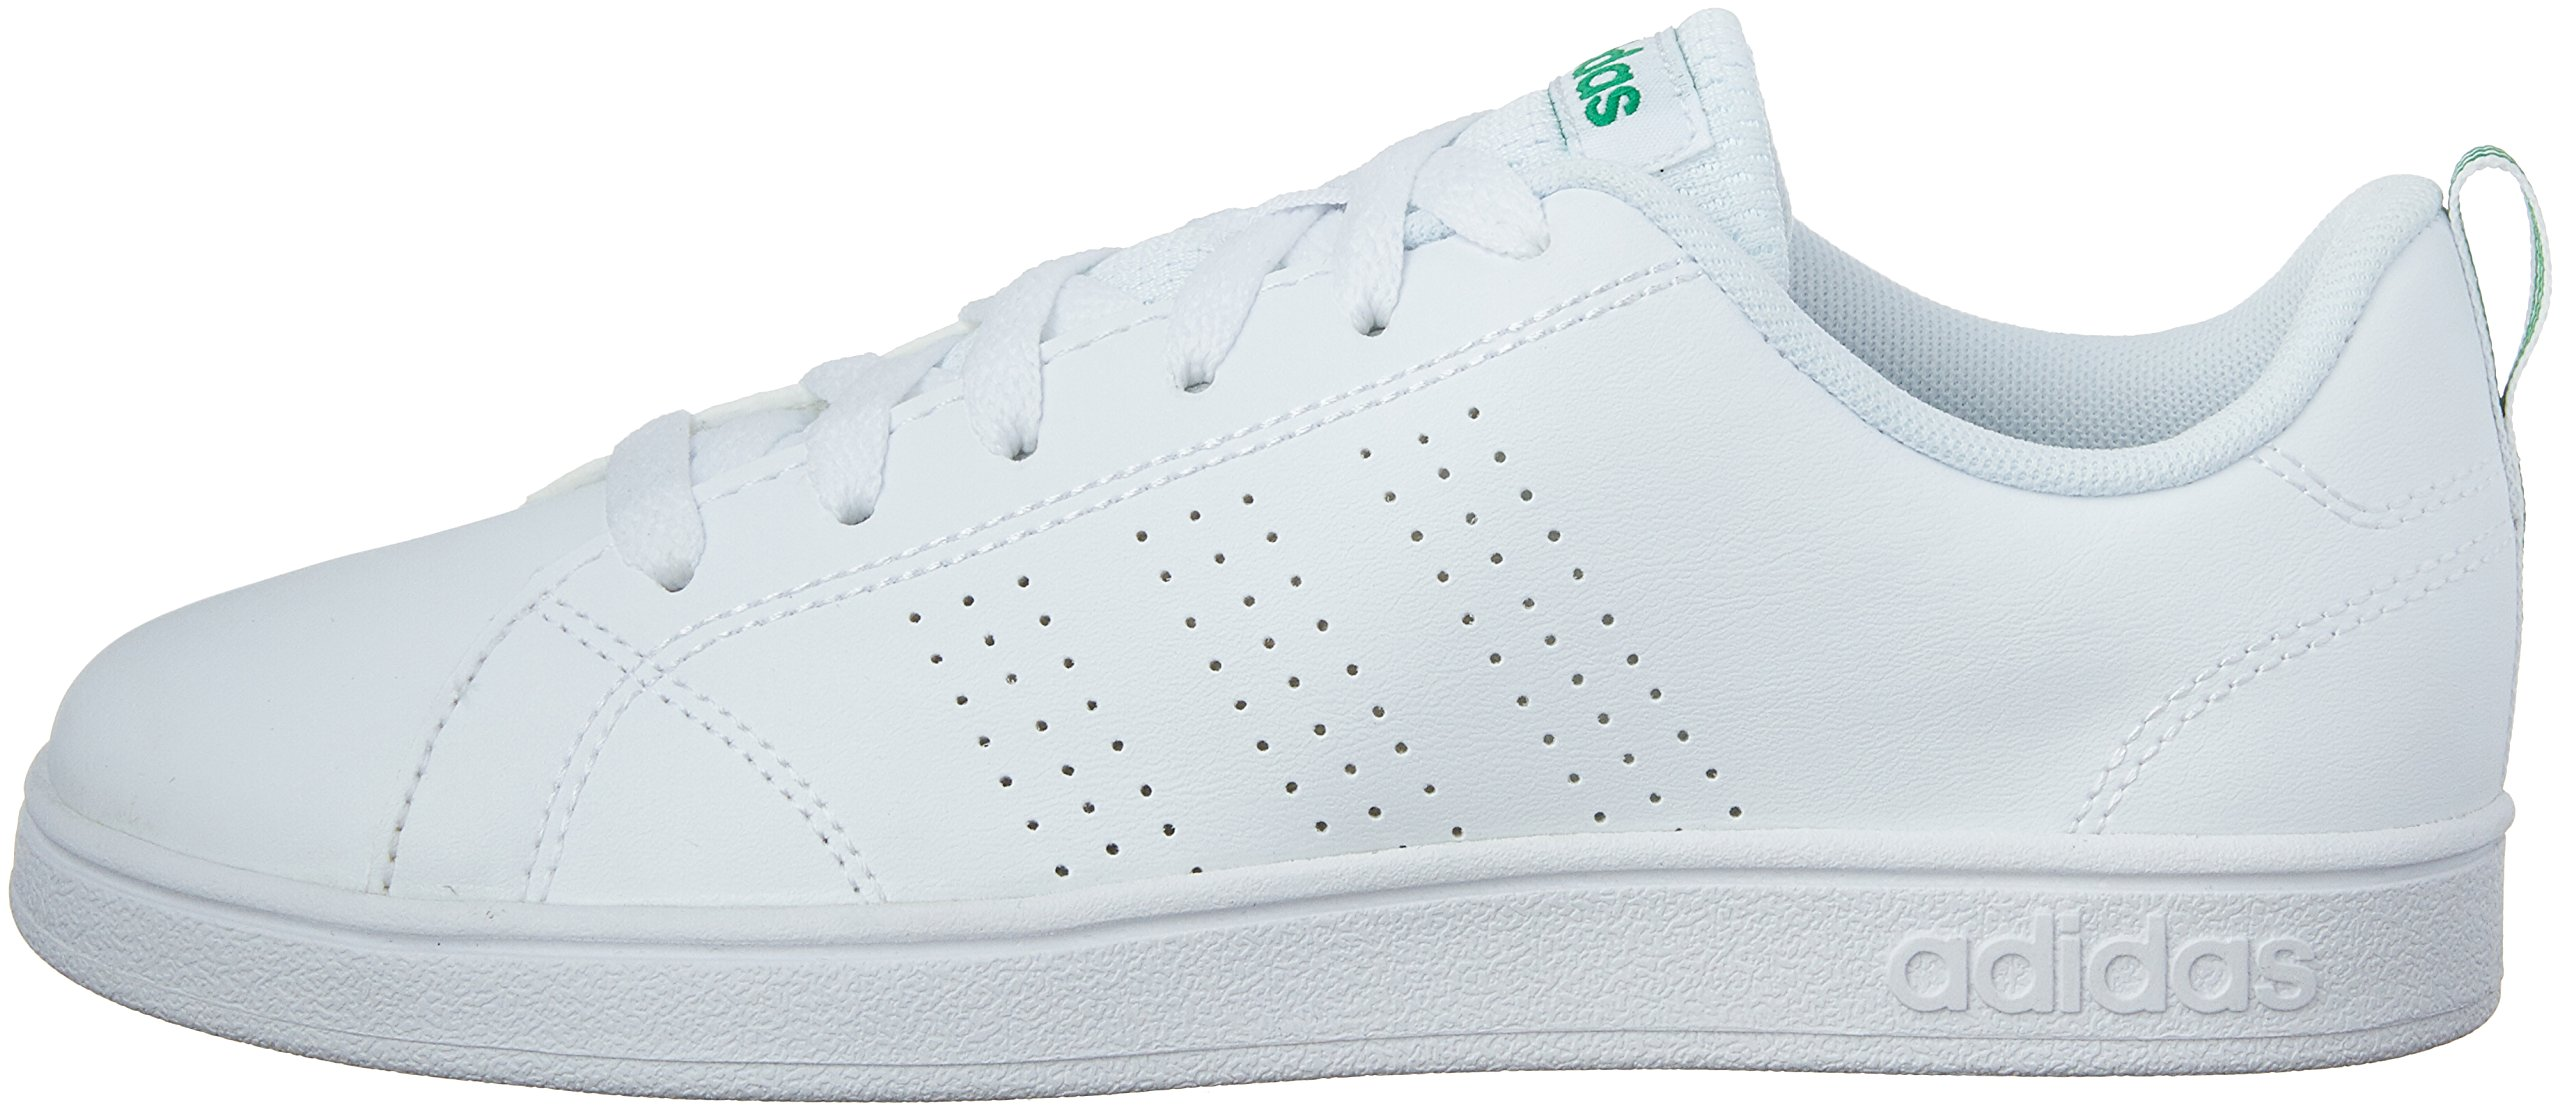 adidas Kids' VS Advantage Clean Sneaker, White/White/Green, 1.5 M US Little Kid by adidas (Image #5)